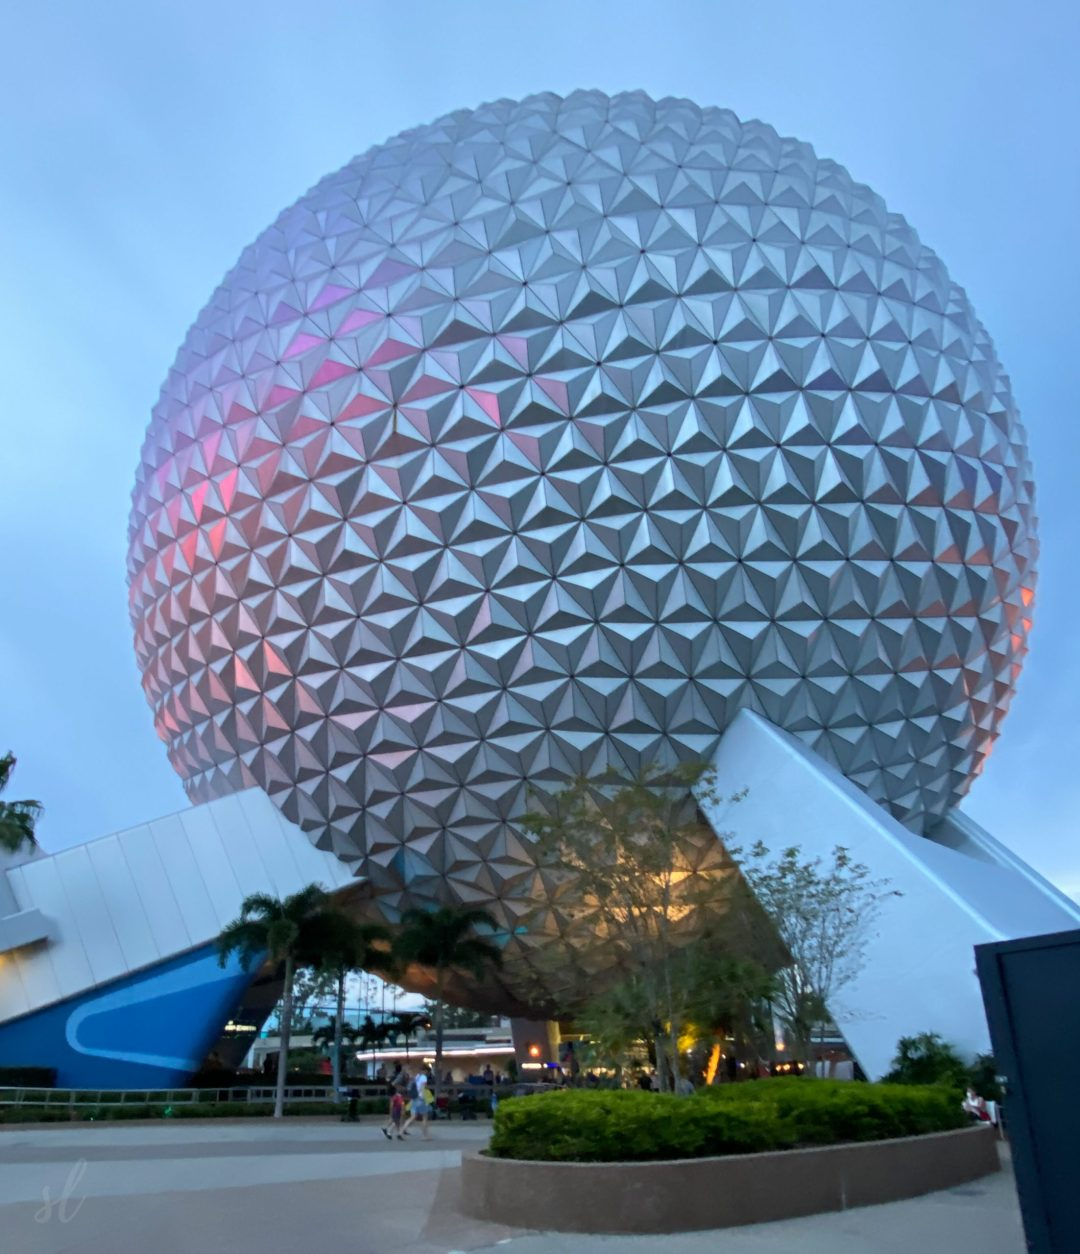 White spherical structure with pink lights reflected on it amidst a dusk backdrop